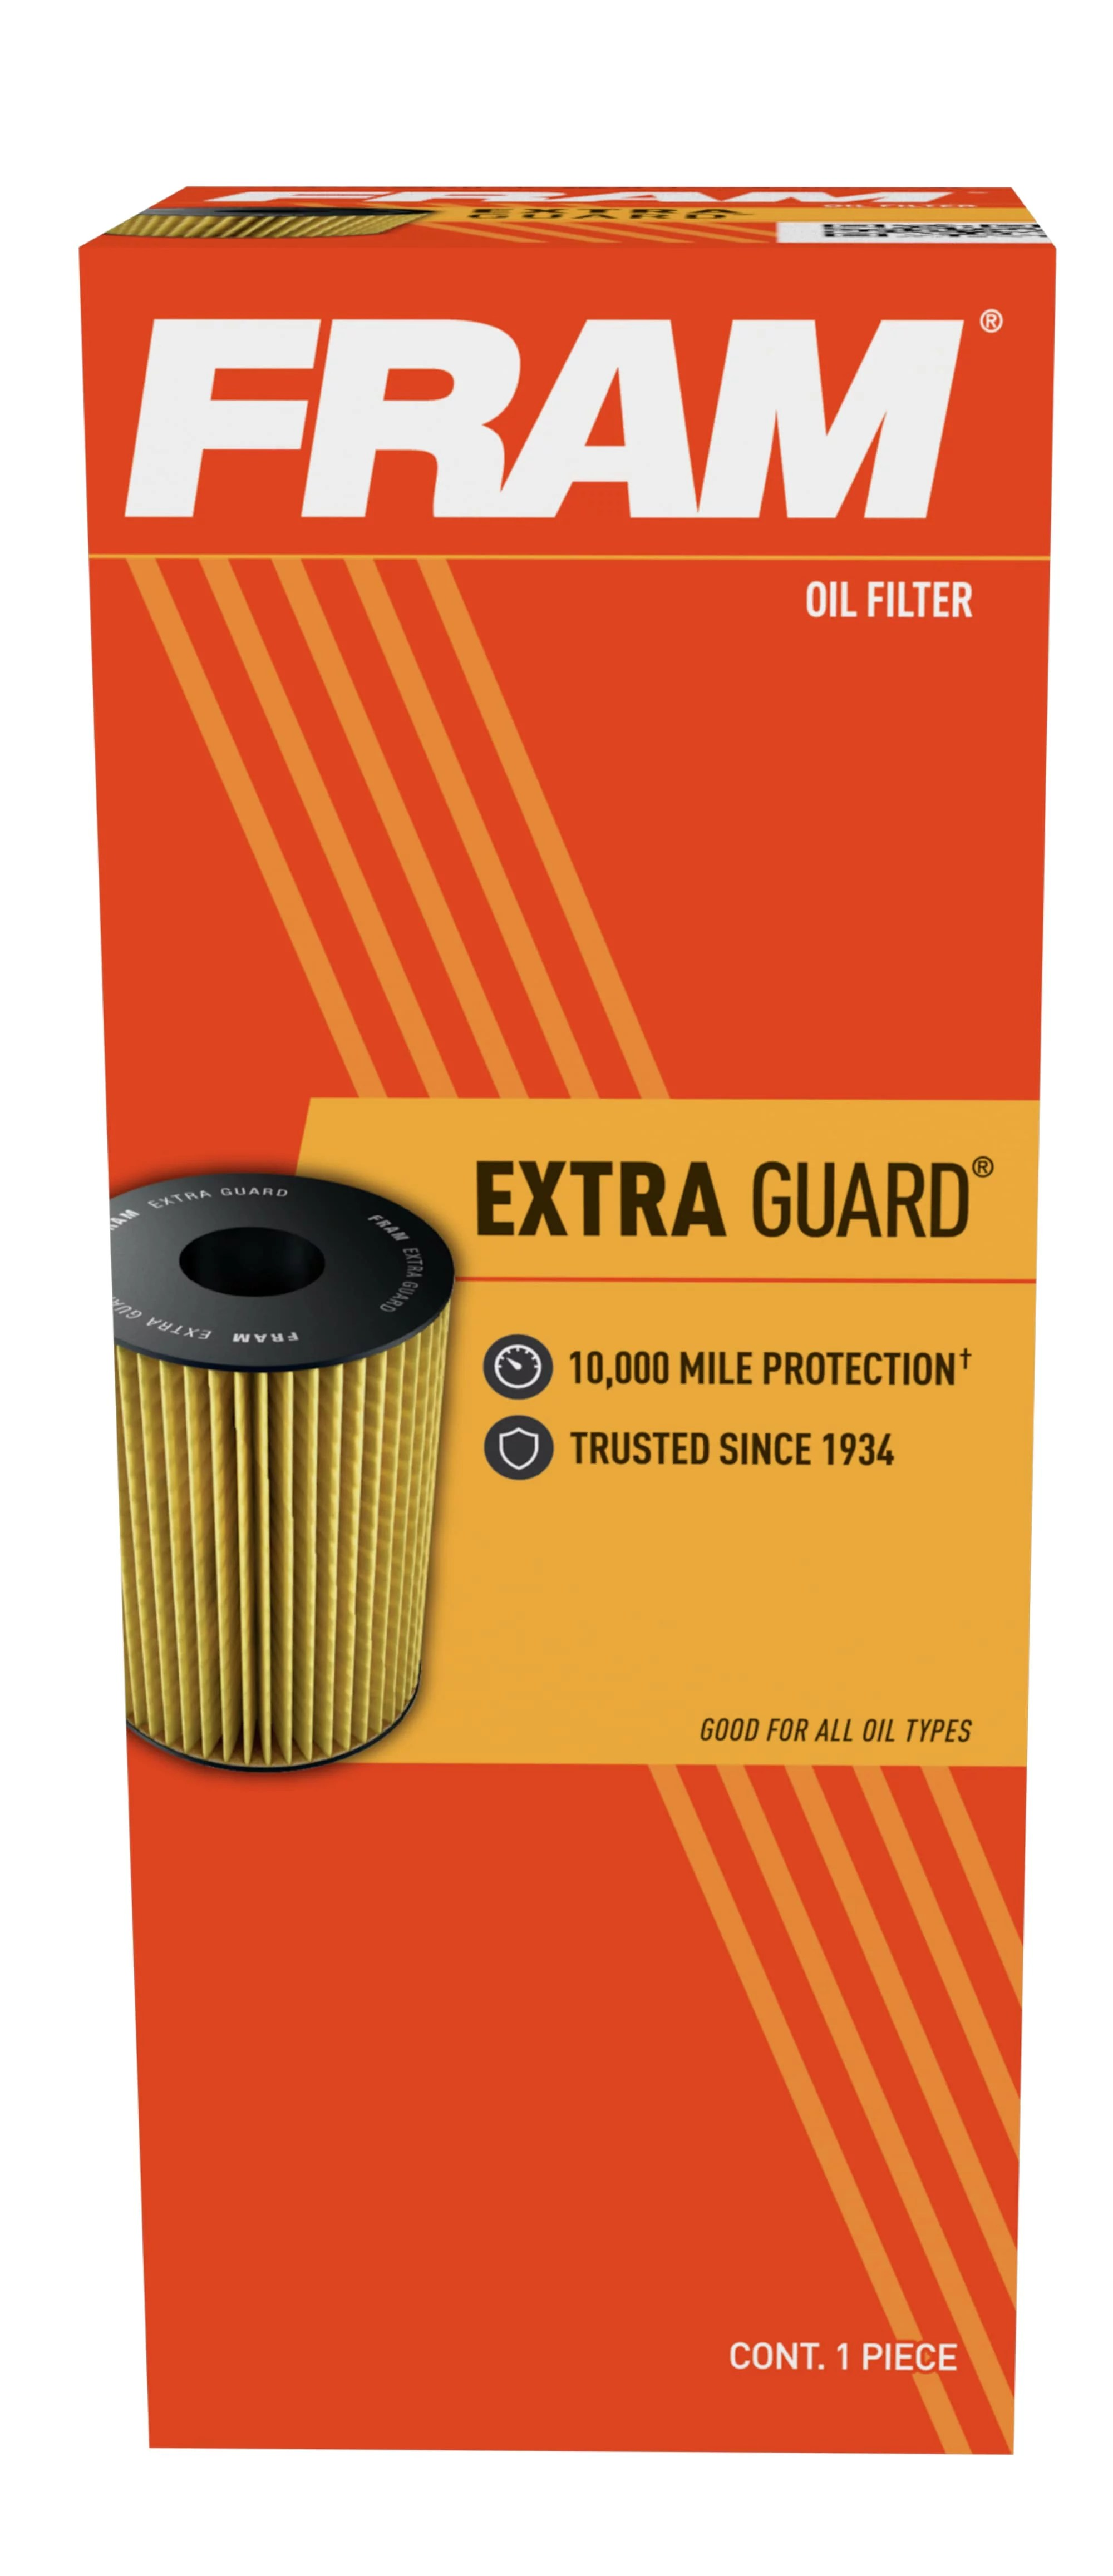 Oil Filter Lookup Walmart : filter, lookup, walmart, Extra, Guard, Filter, CH9018,, Change, Interval, Walmart.com